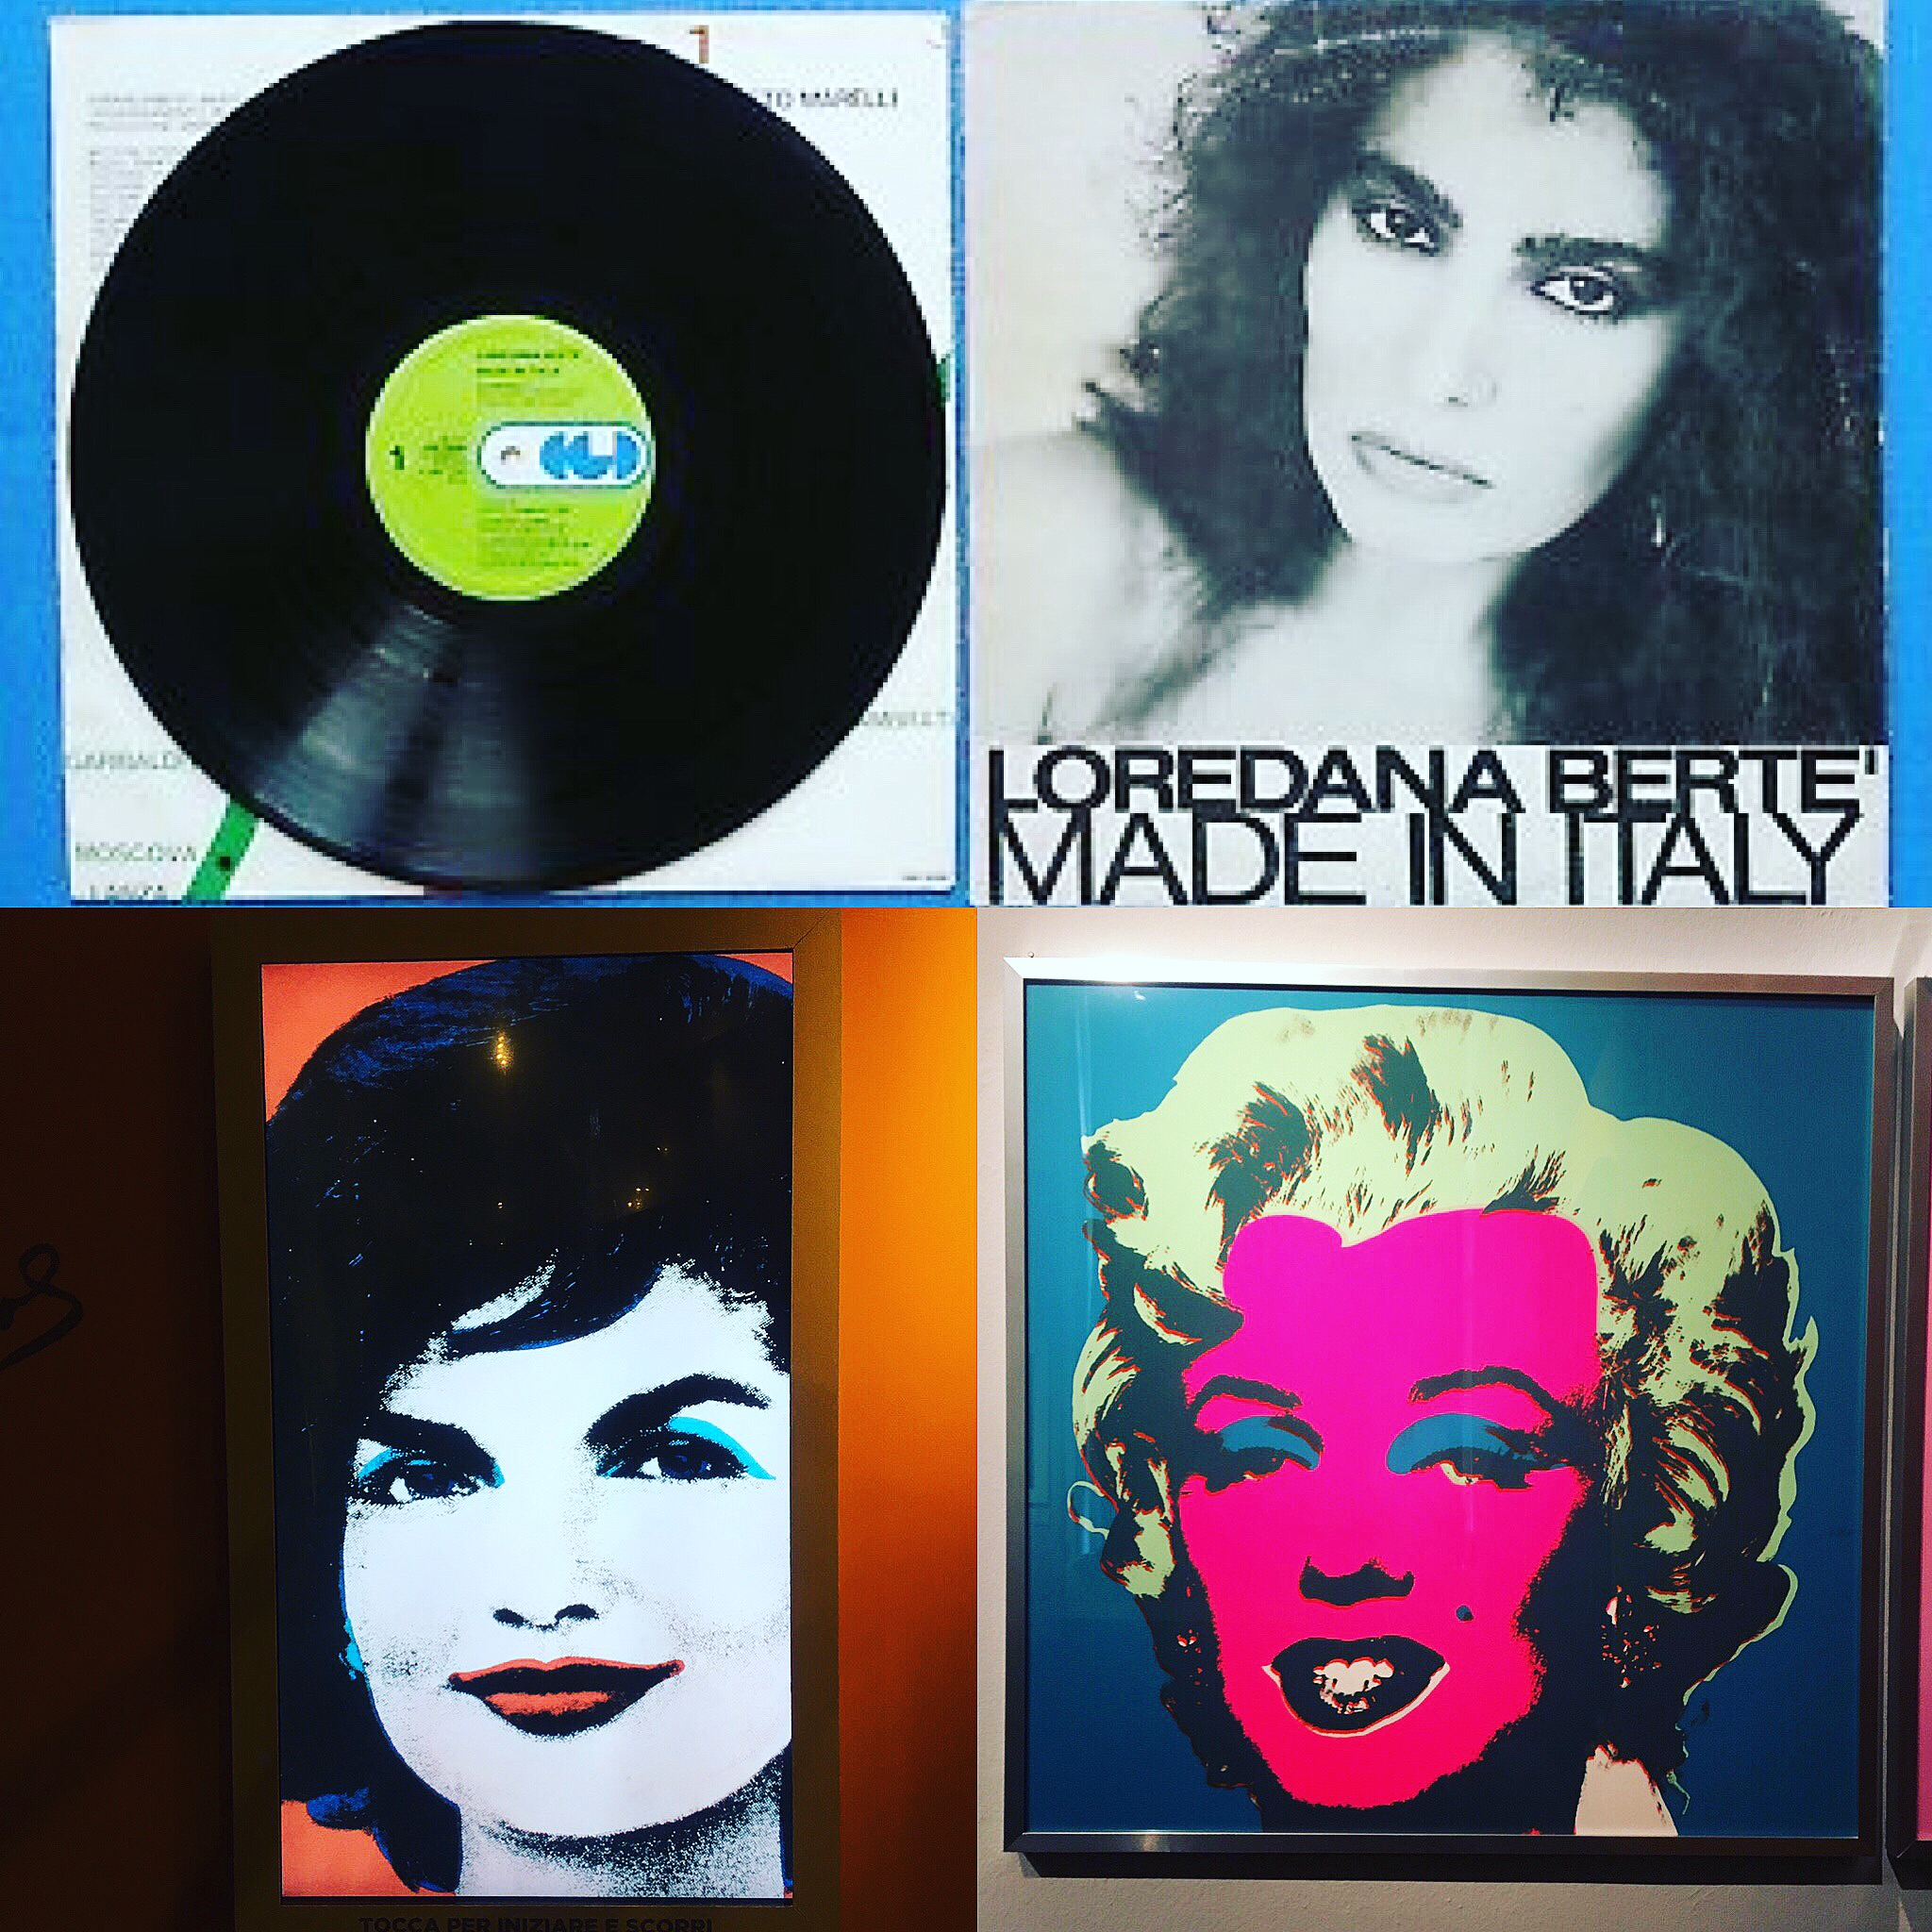 Andy Warhol and Loredana Bertè A legendary duet